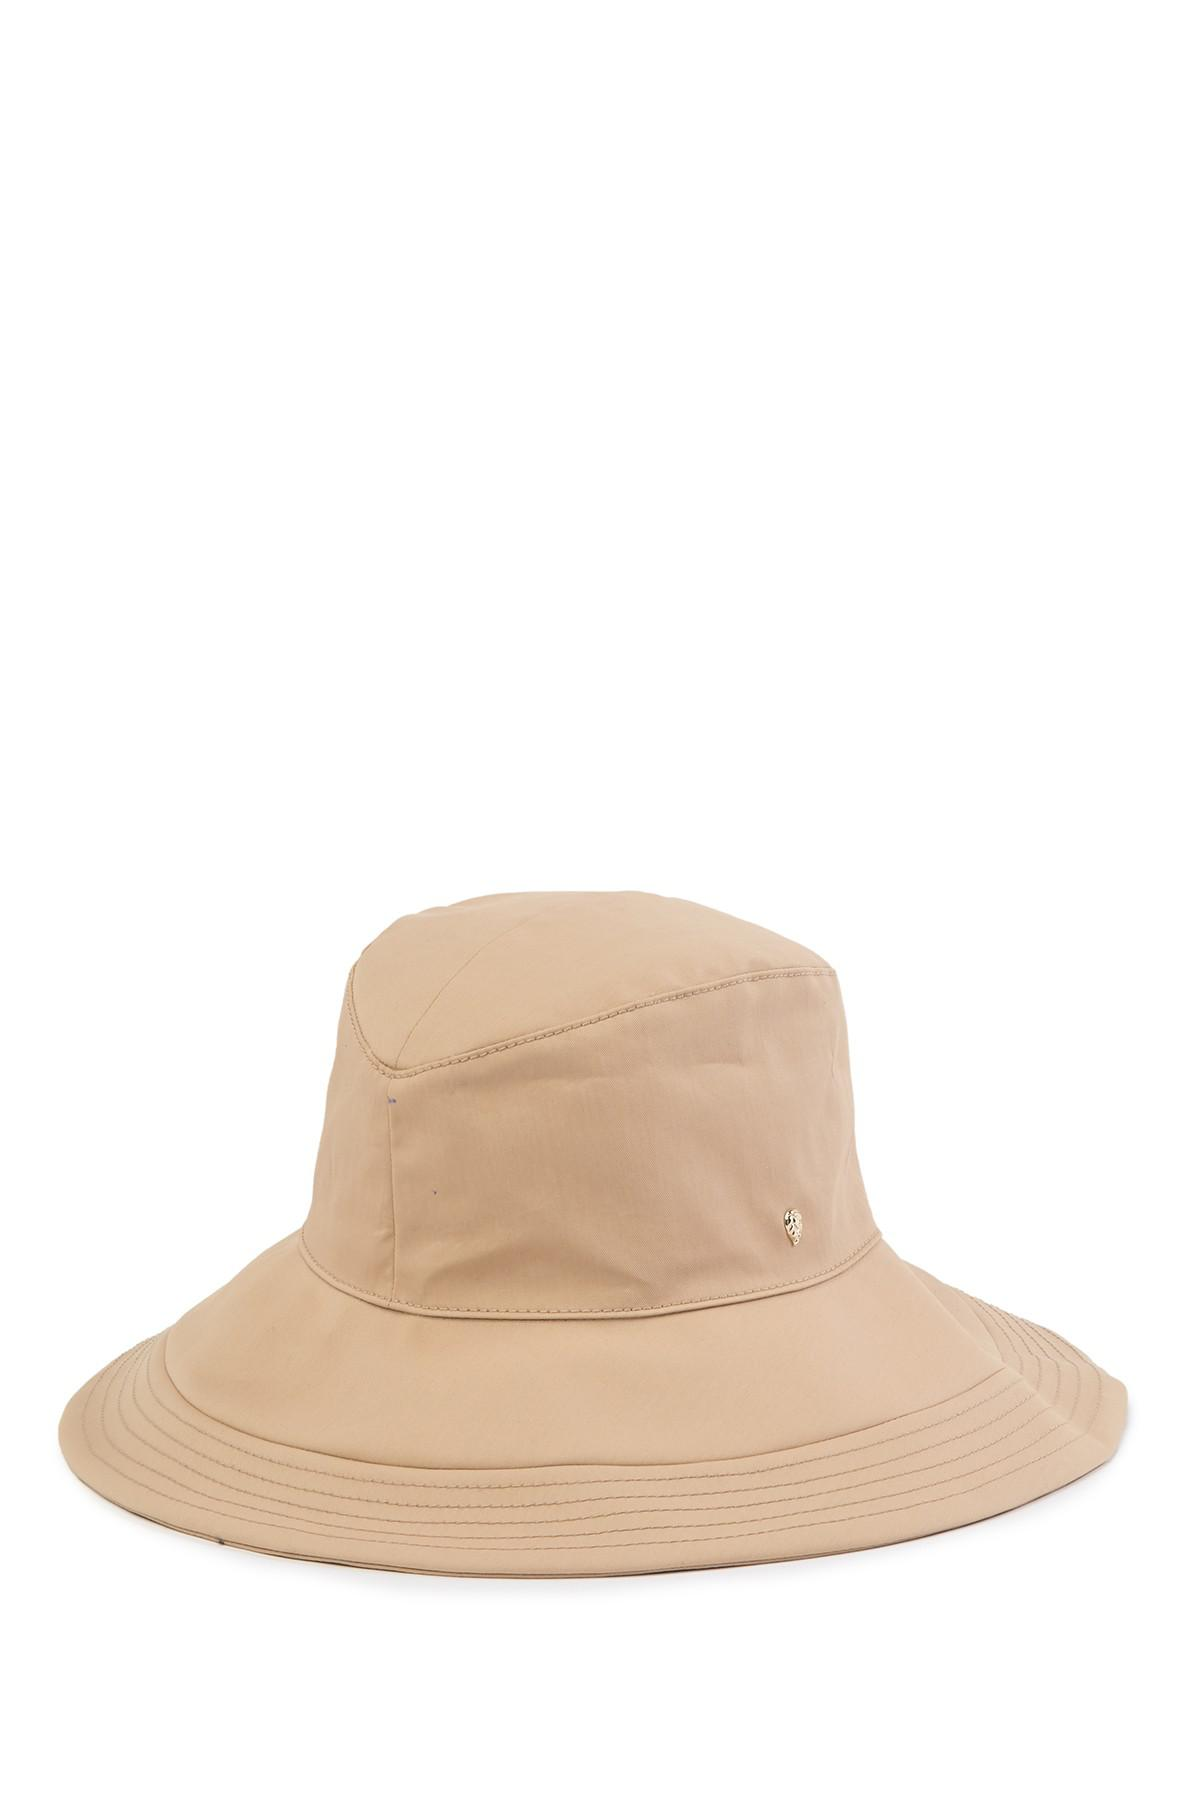 ac17376ced576 Lyst - Helen Kaminski Kizzy Wide Brim Hat in Natural